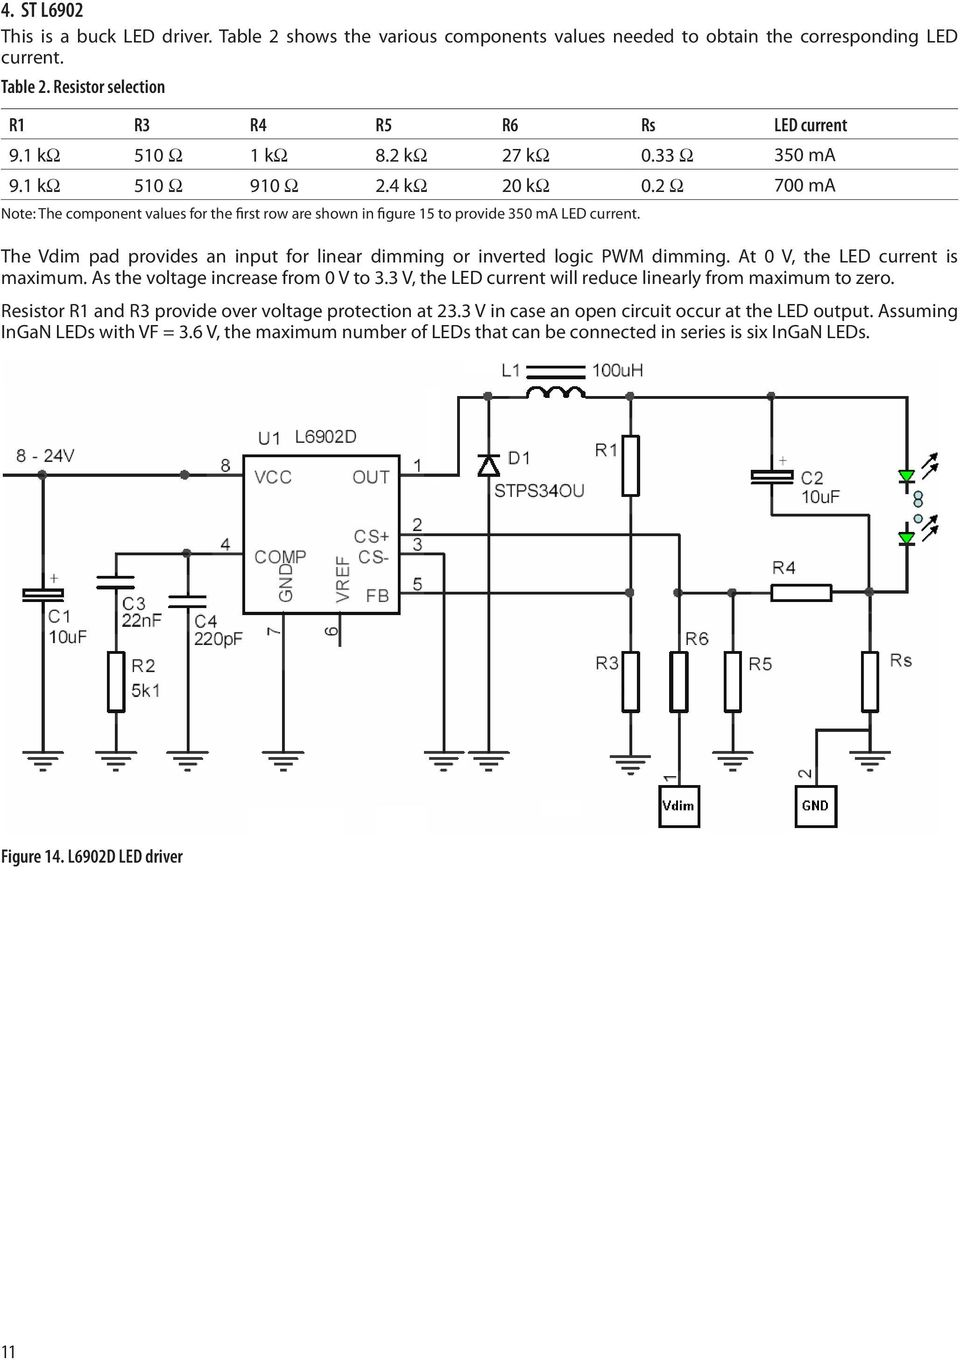 Application Note Pdf Technique Of Paralleling Led Strings With Current Balancing Schematic The Vdim Pad Provides An Input For Linear Dimming Or Inverted Logic Pwm At